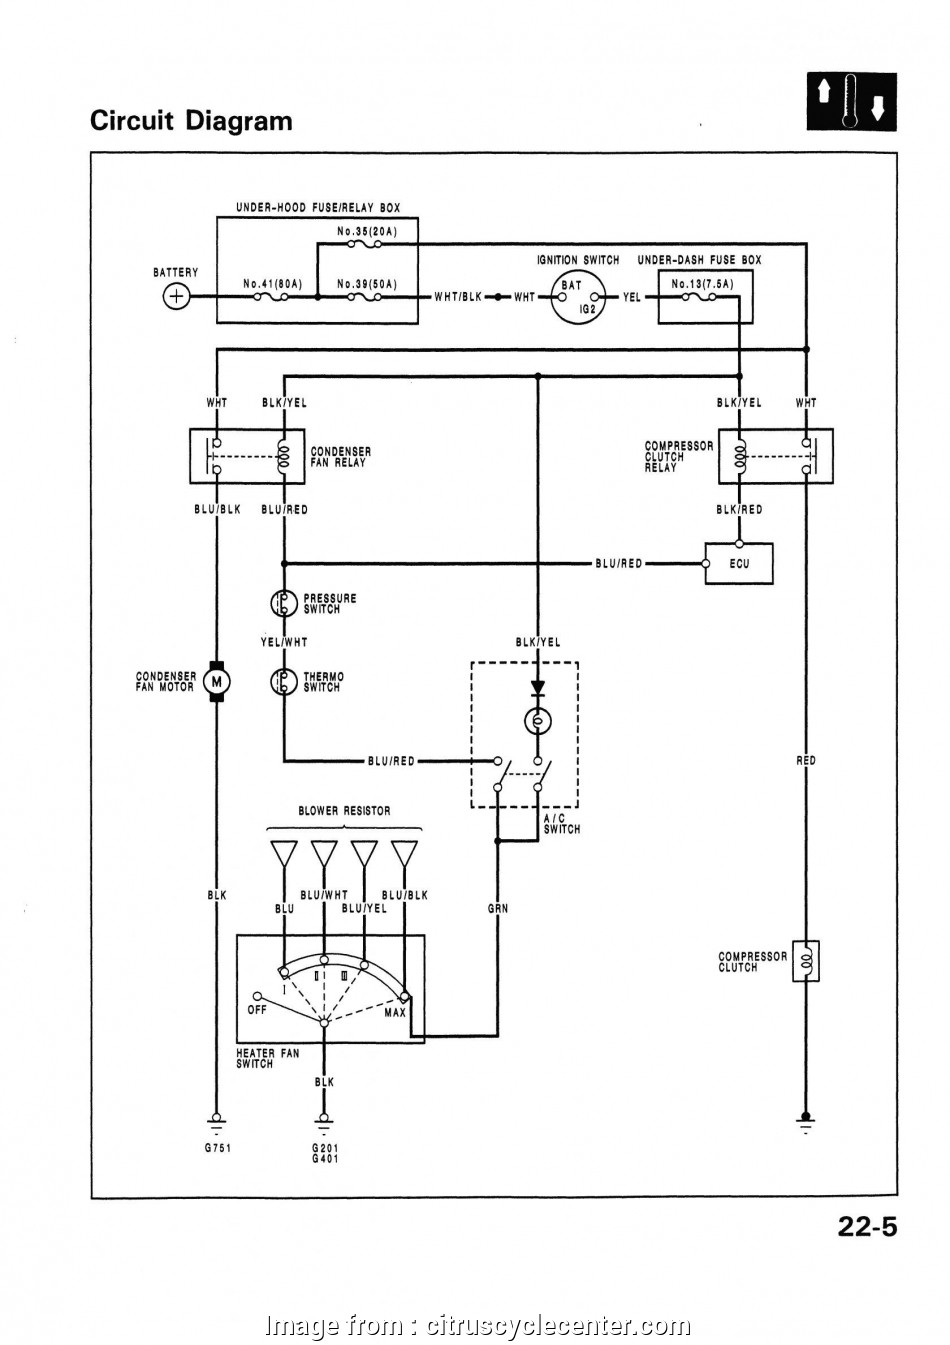 Electrical Wiring Diagram Of  Compressor New Pressure Switch Wiring Diagram  Compressor